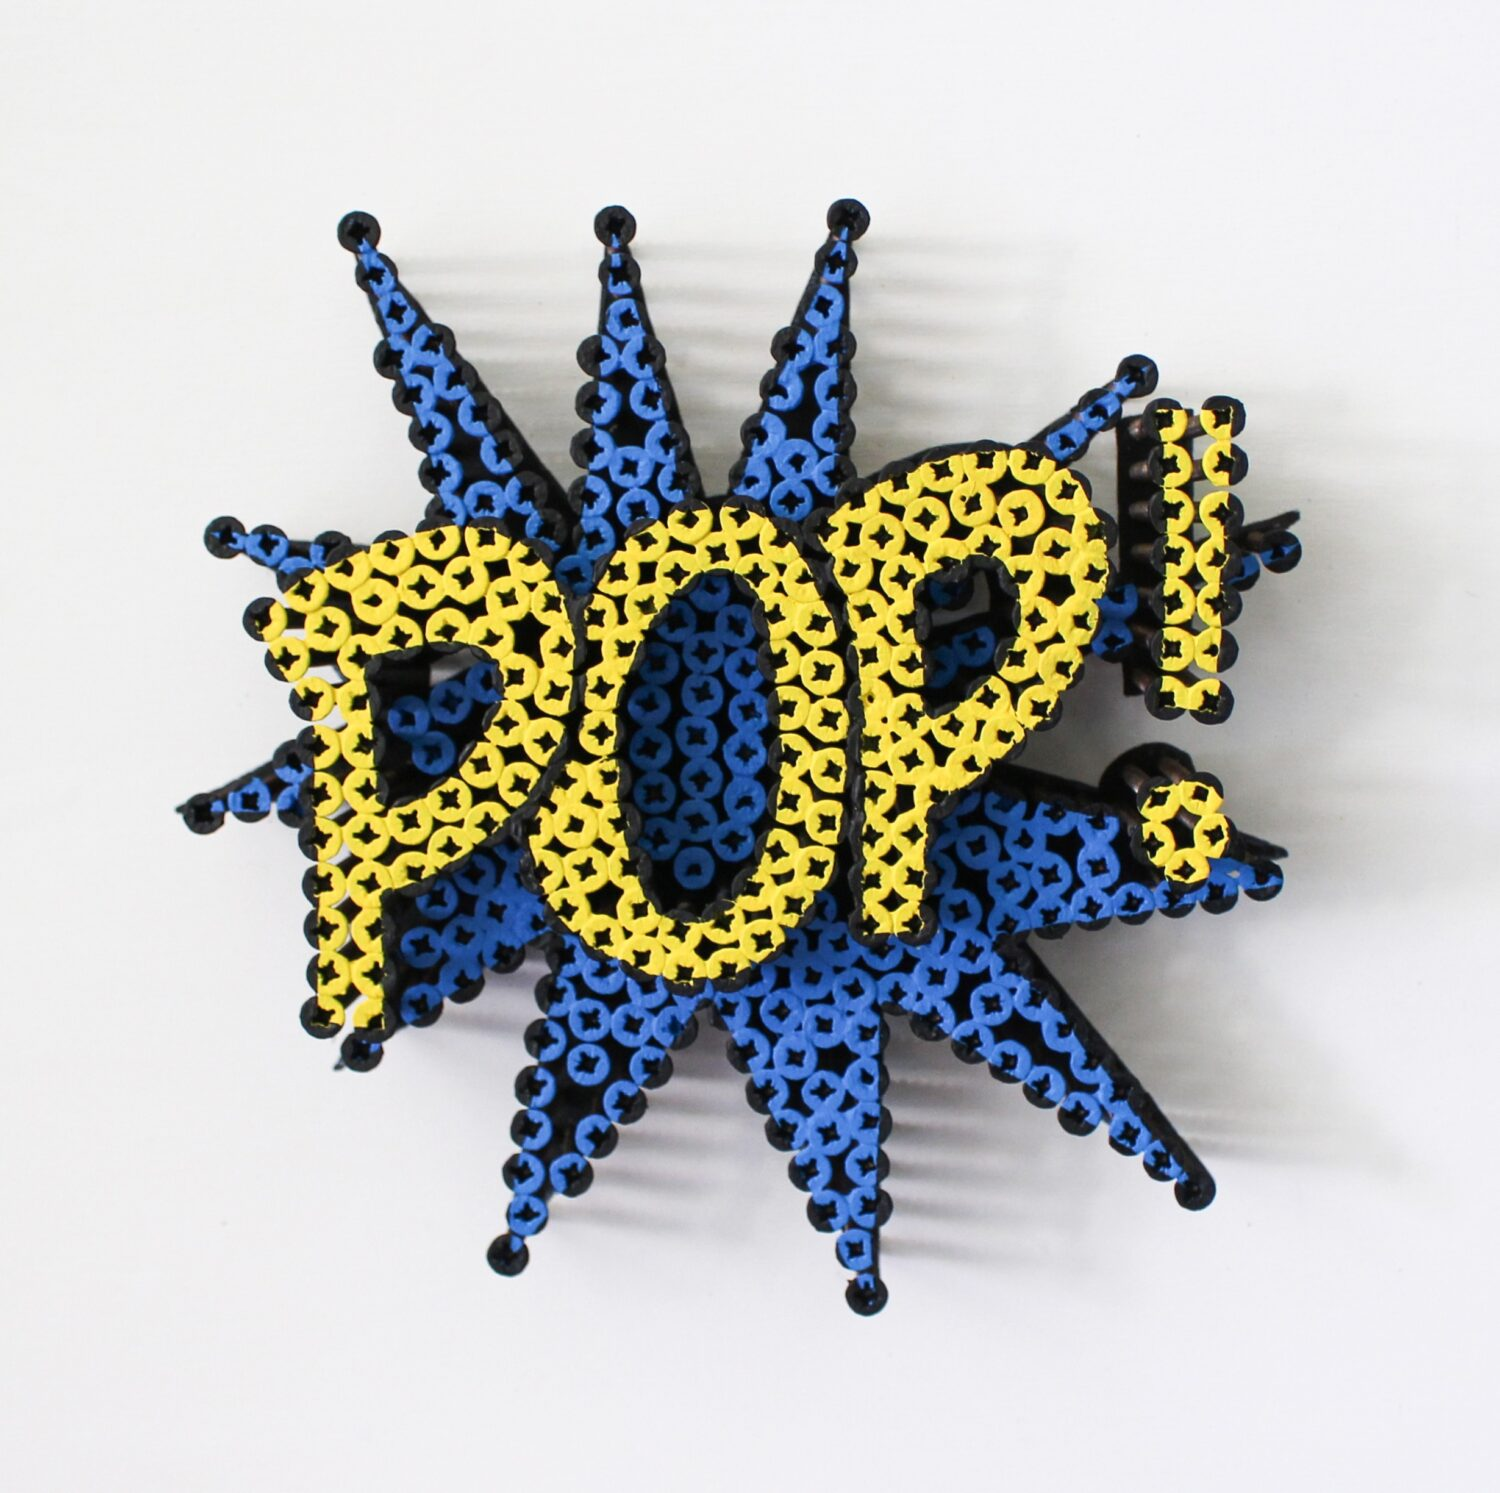 Alessandro Padovan - Screw art - Mini Pop blauw